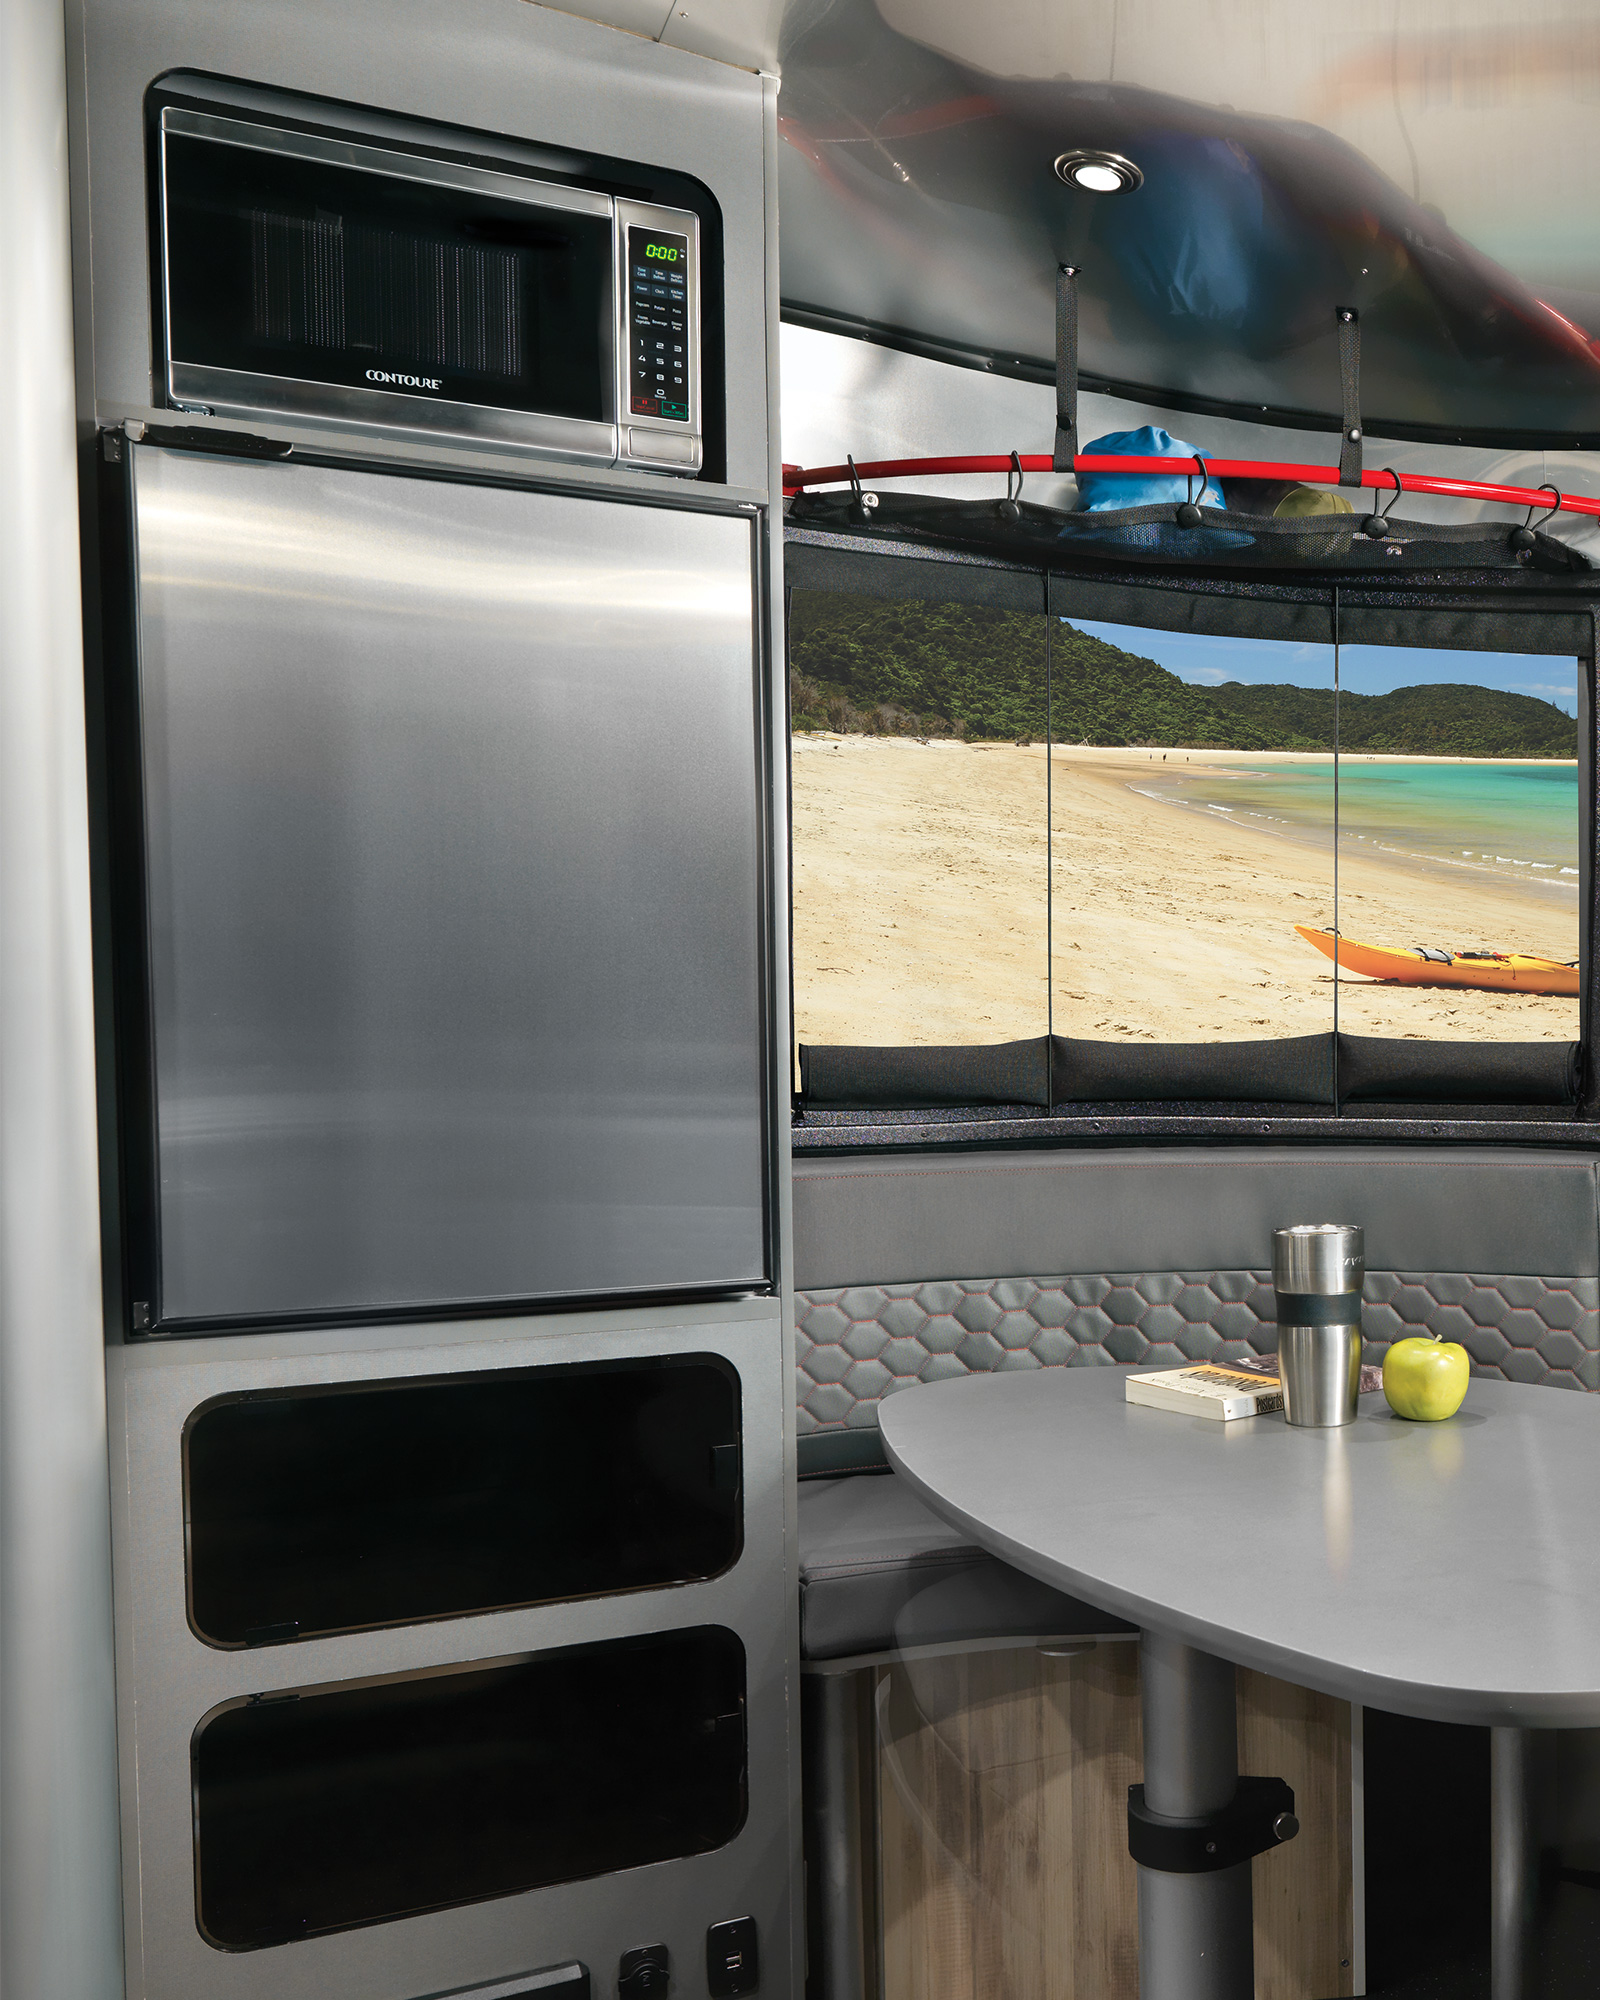 Airstream-Basecamp-20-Interior-Refrigerator-and-Microwave